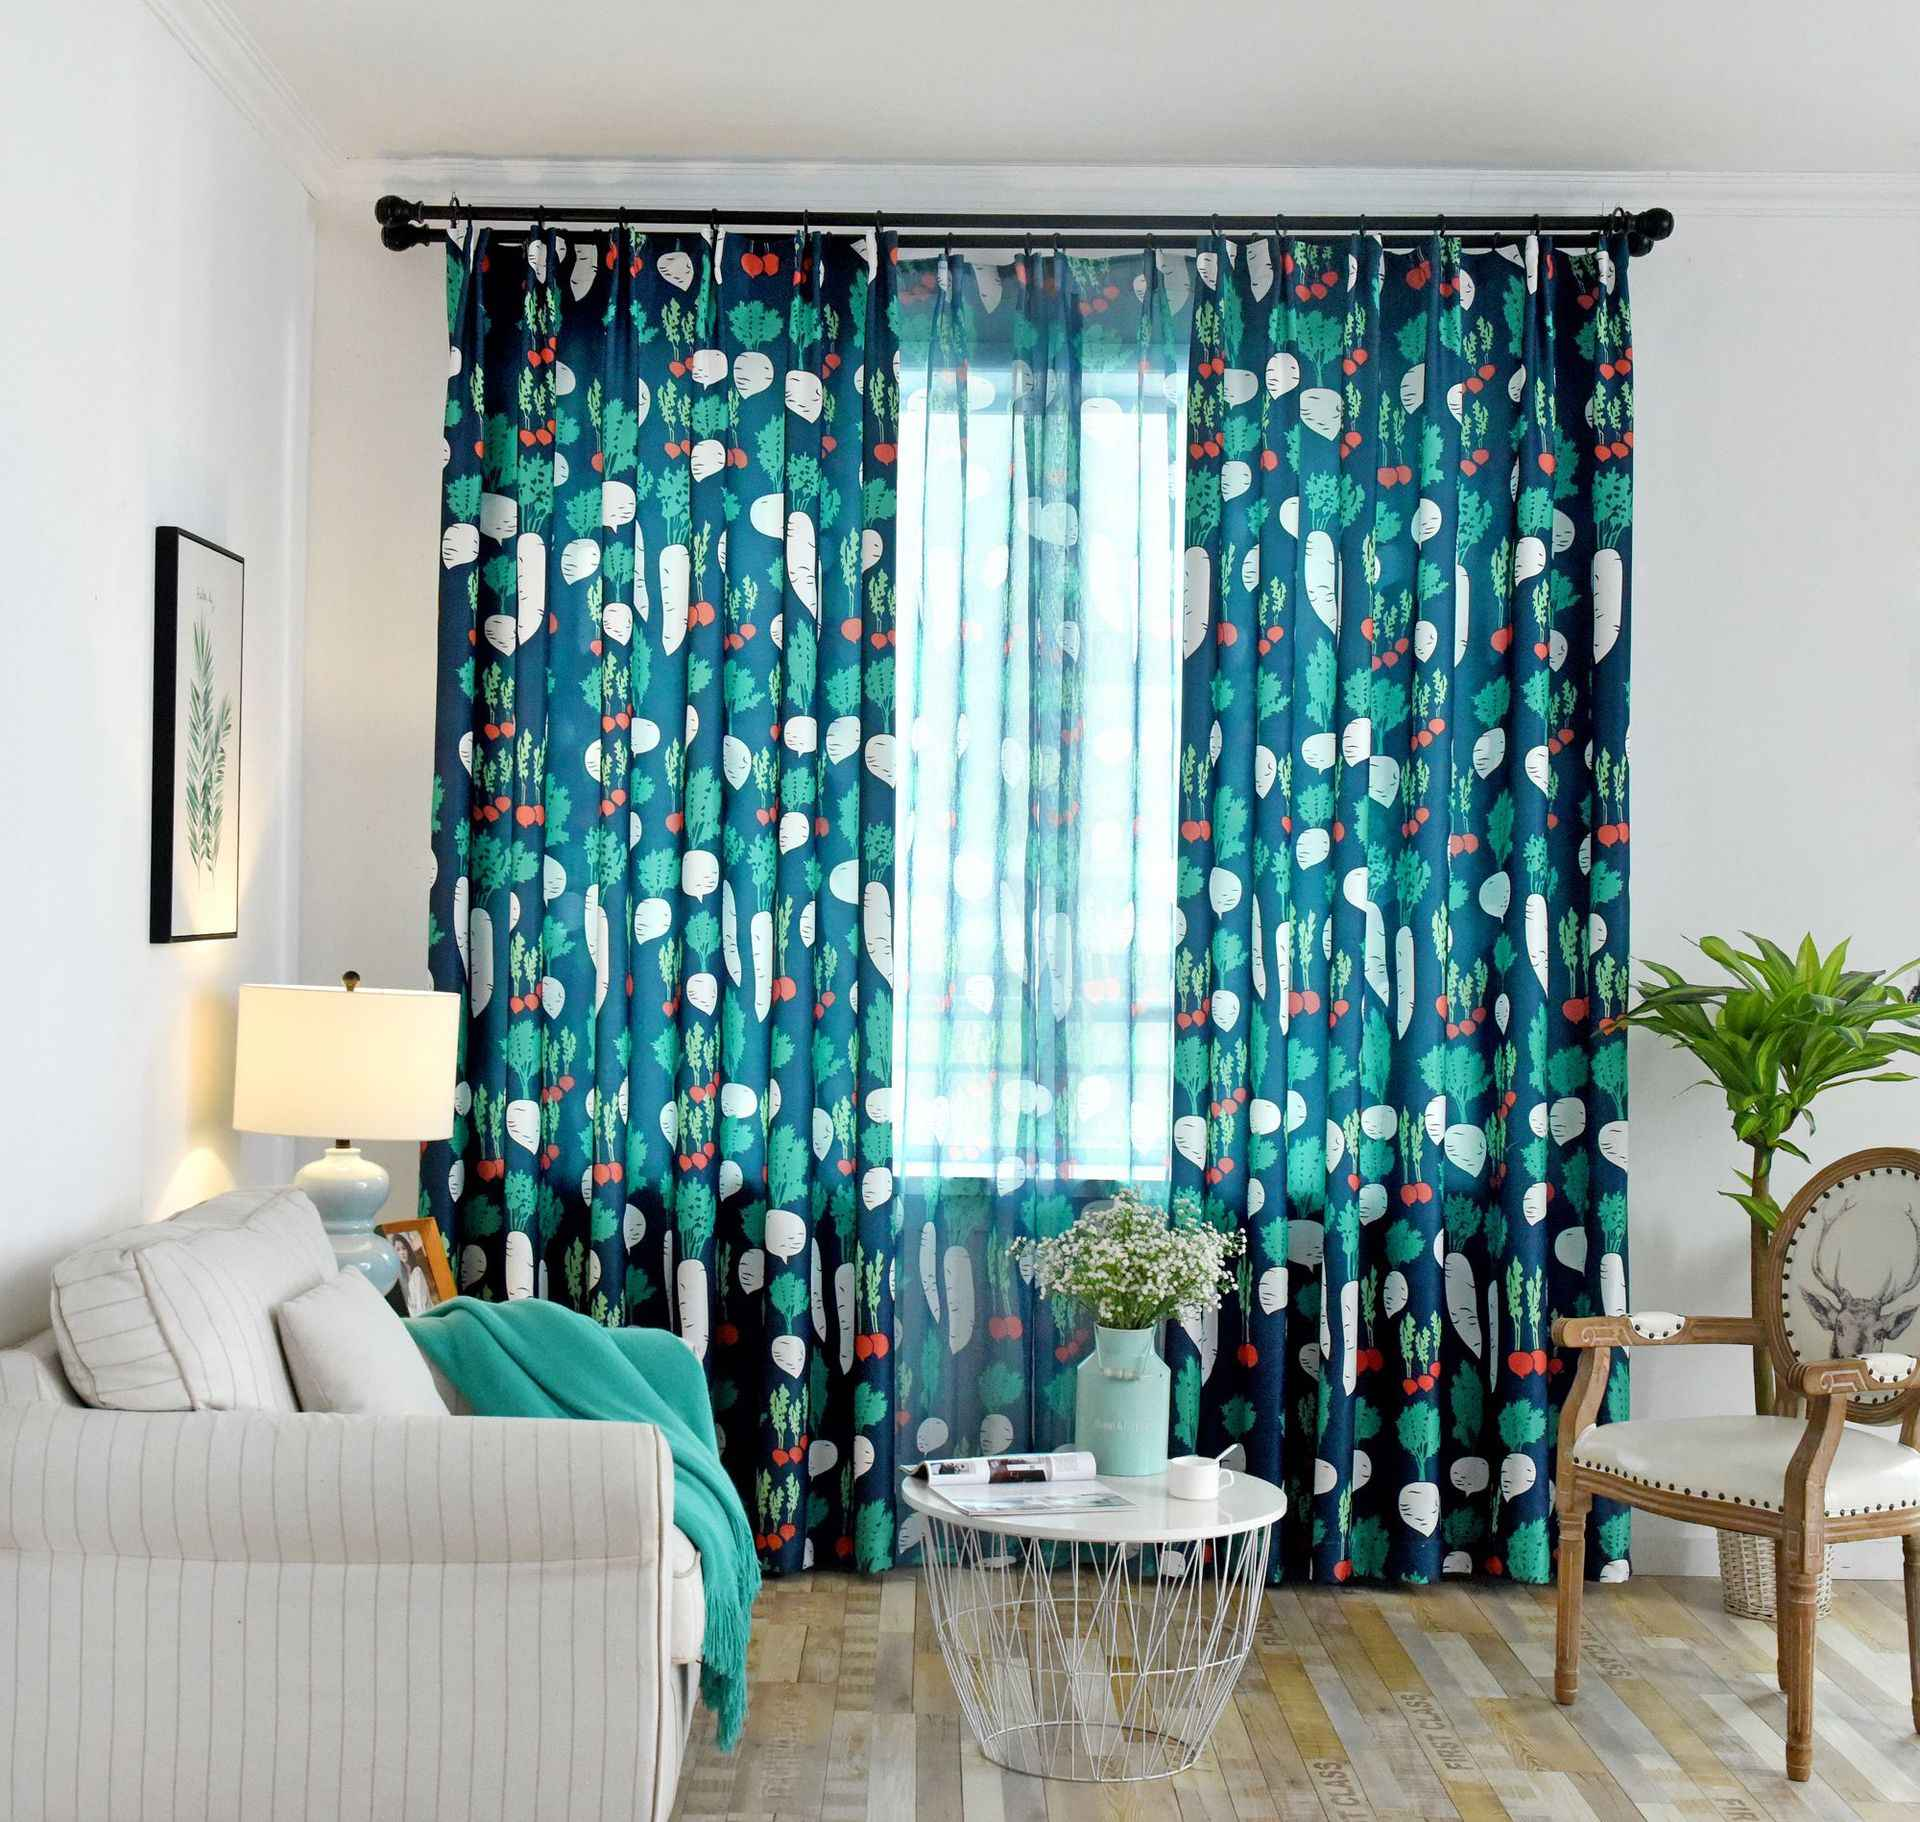 Modern Nordic Radish Boys Girls Curtains for Living Room  Curtains Embroidered Curtains for Bedroom Fresh Stripes Curtains